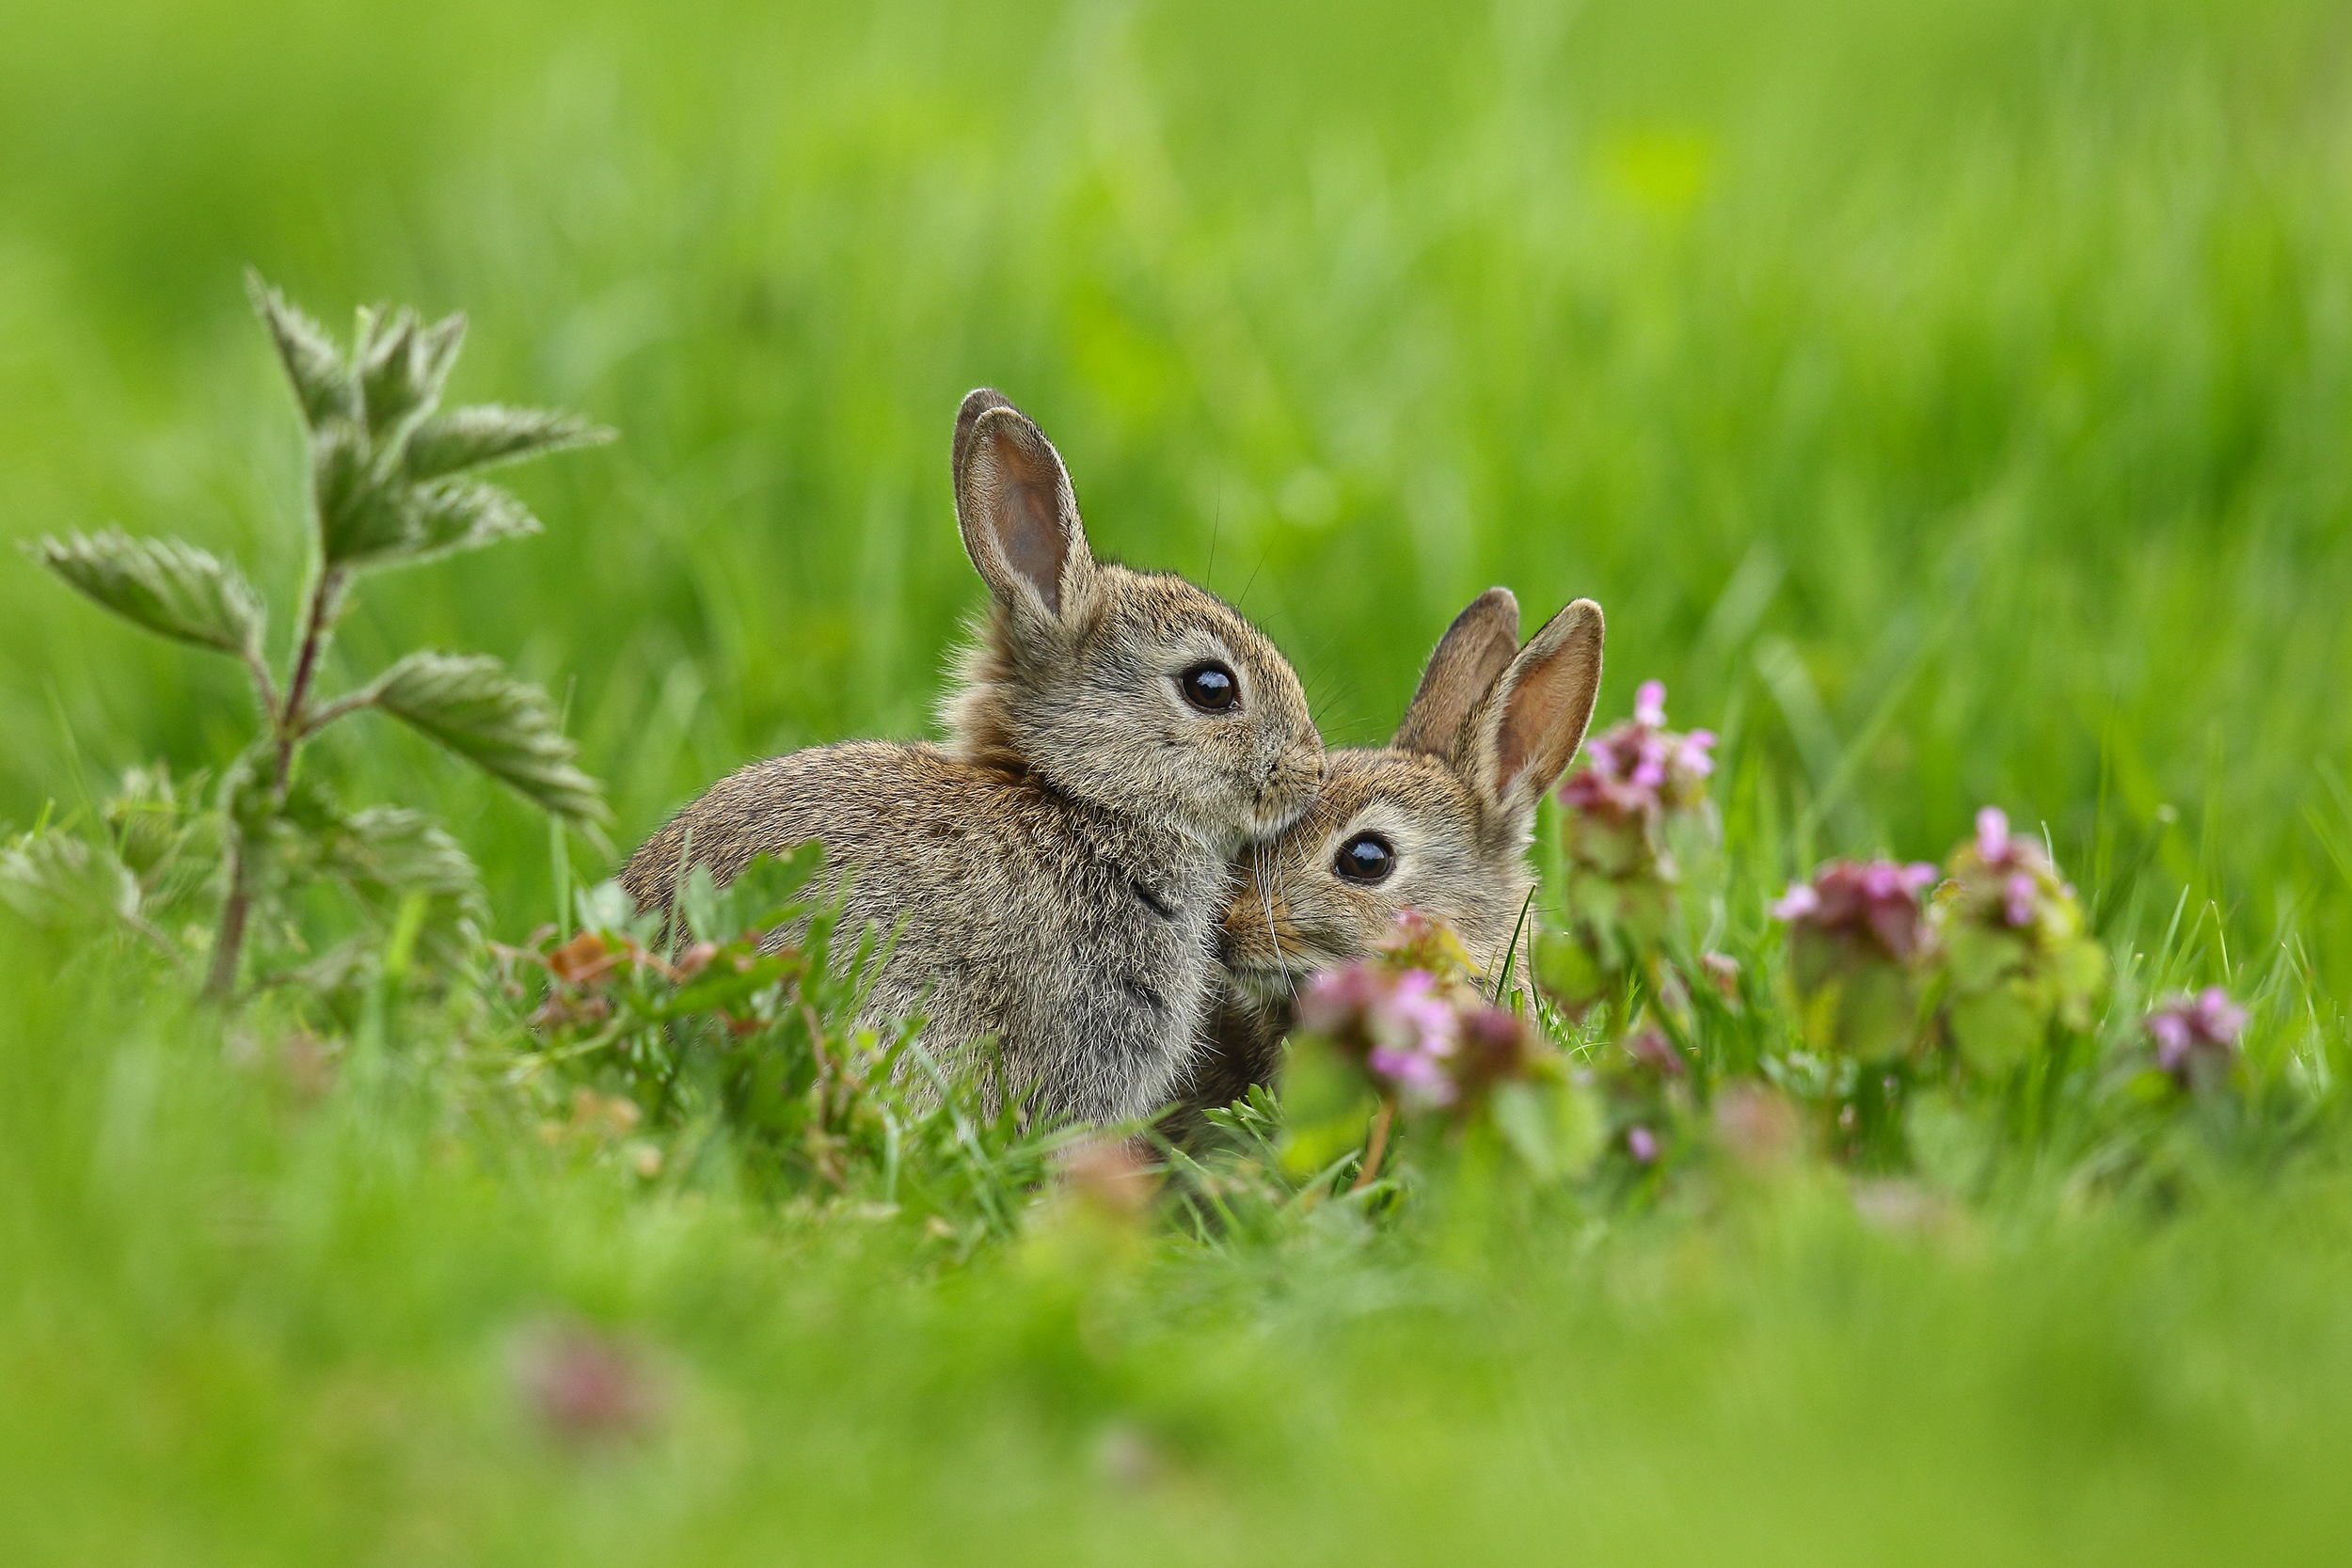 bunnies, rabbits, simon, roy, photography, juvenile, spring, easter, Yorkshire, wild, nettles